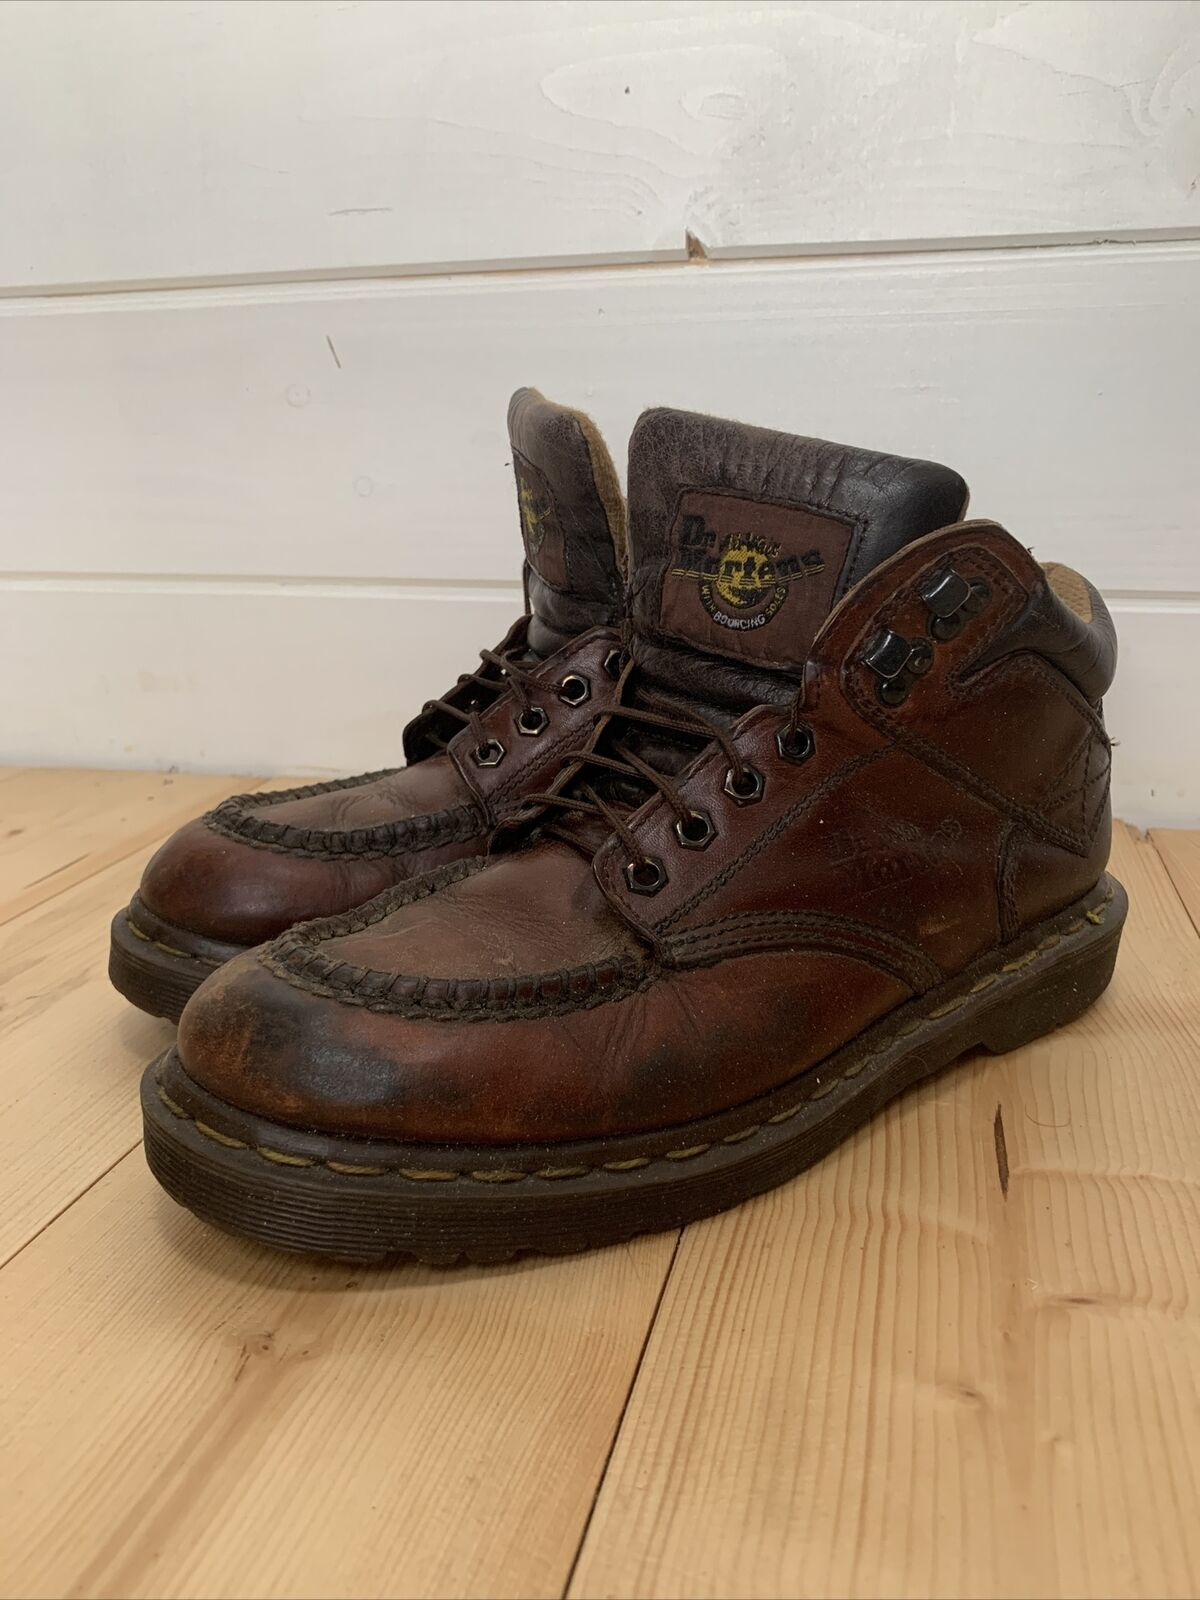 Dr. Martens Men's Brown Leather Made In England Boots Size UK 8 EU 42.5 High Top